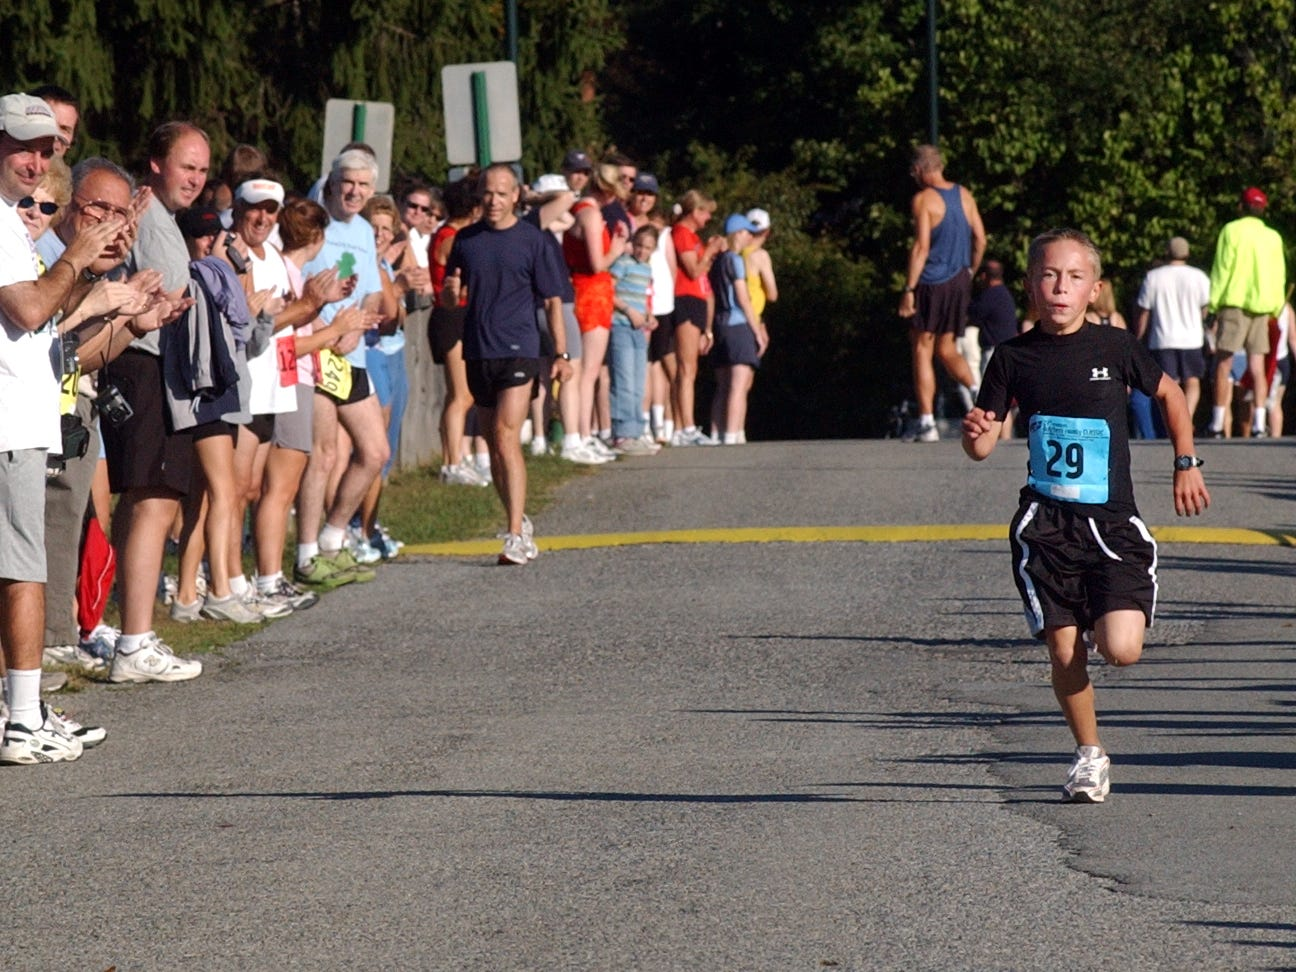 Sebastian Hanson, 10, runs to the finish line to win the kids race at the Dutchess County Classic on Sunday, Sept. 18, 2005.